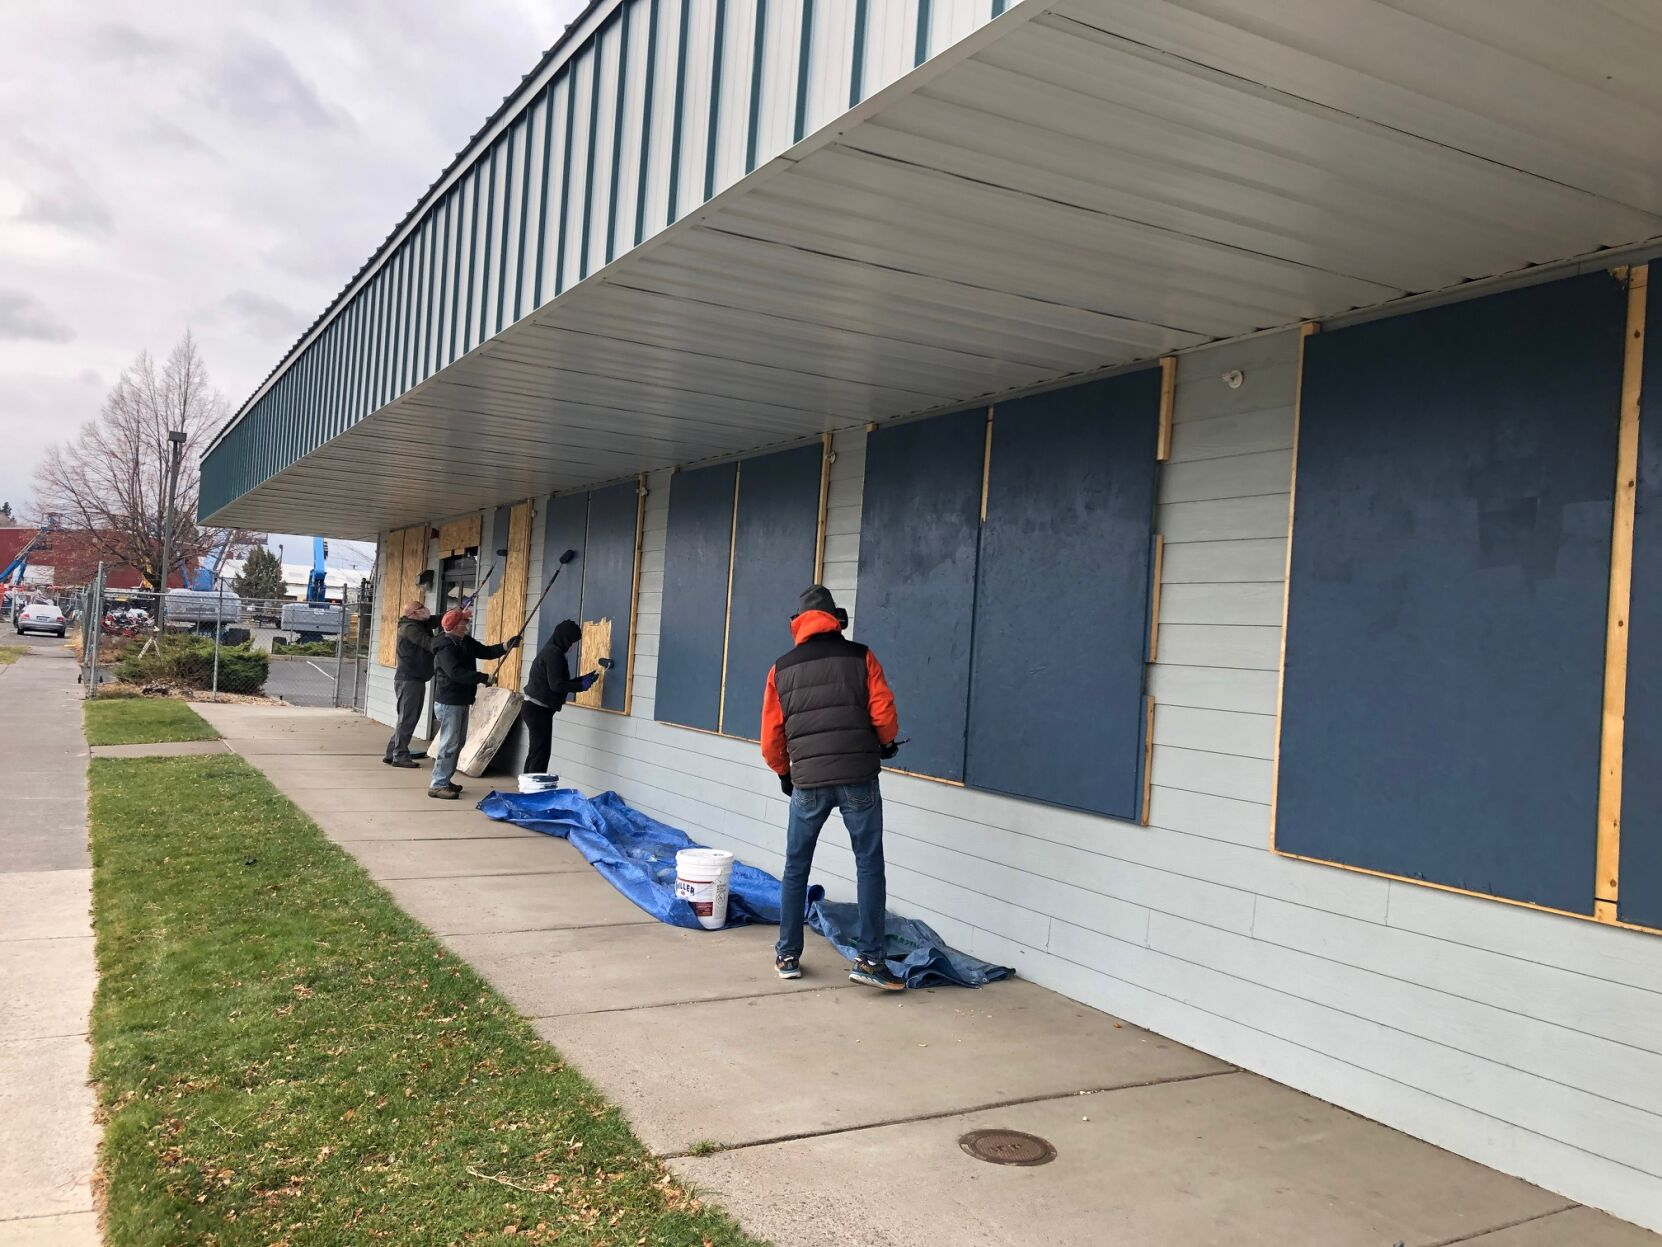 Editorial: Rep. Kropf has partial fix for Bend's homeless